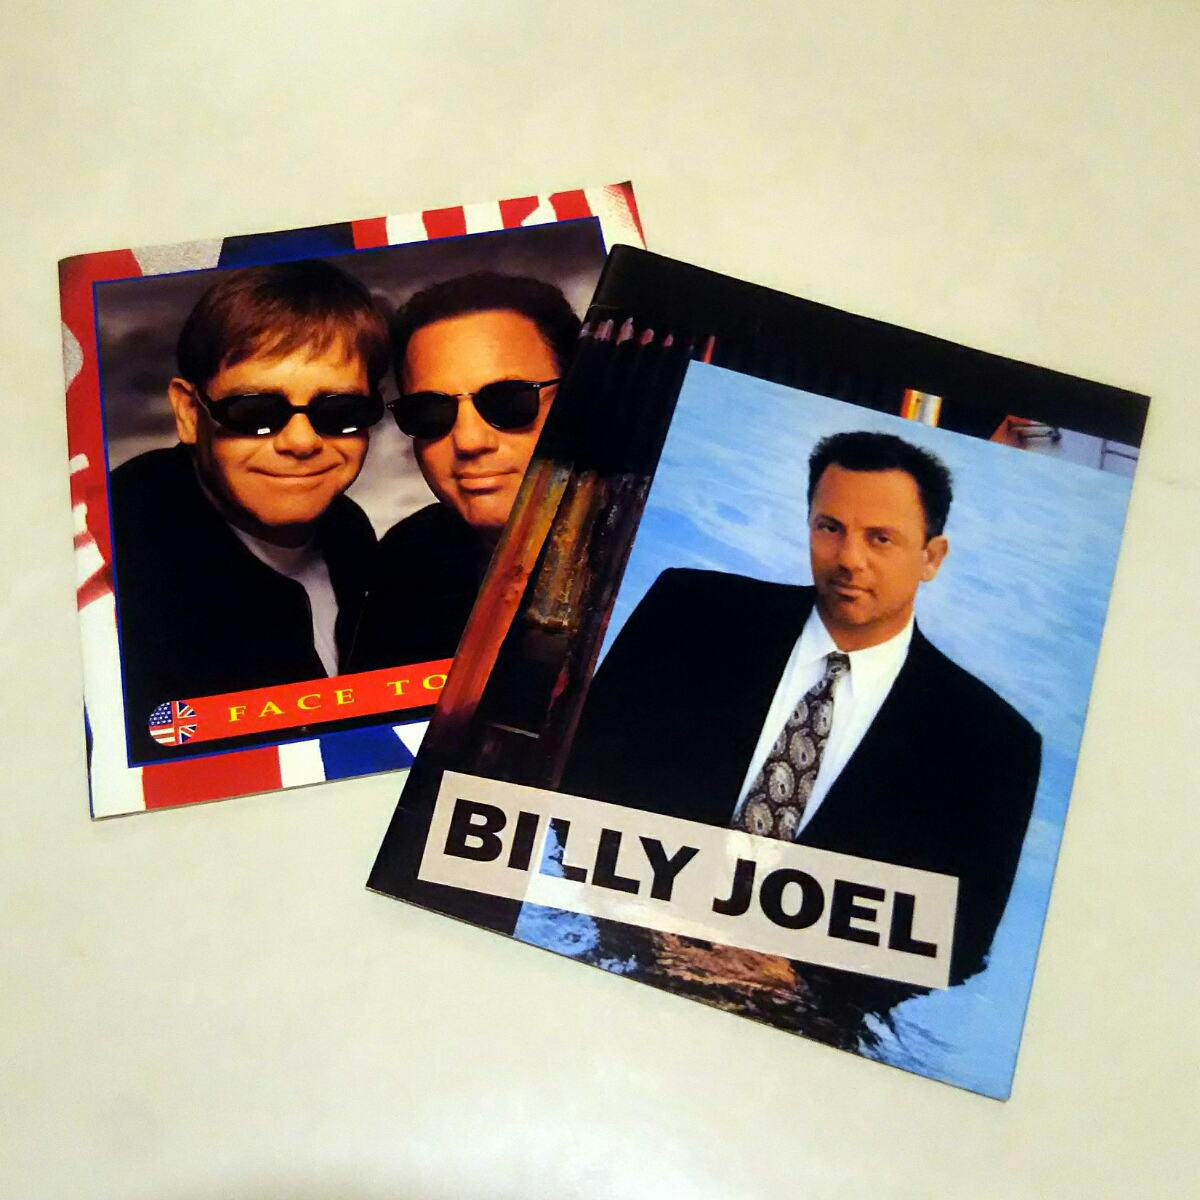 Billy Joel & Elton John Face to Face / 1995 ツアーパンフ【2冊セット】